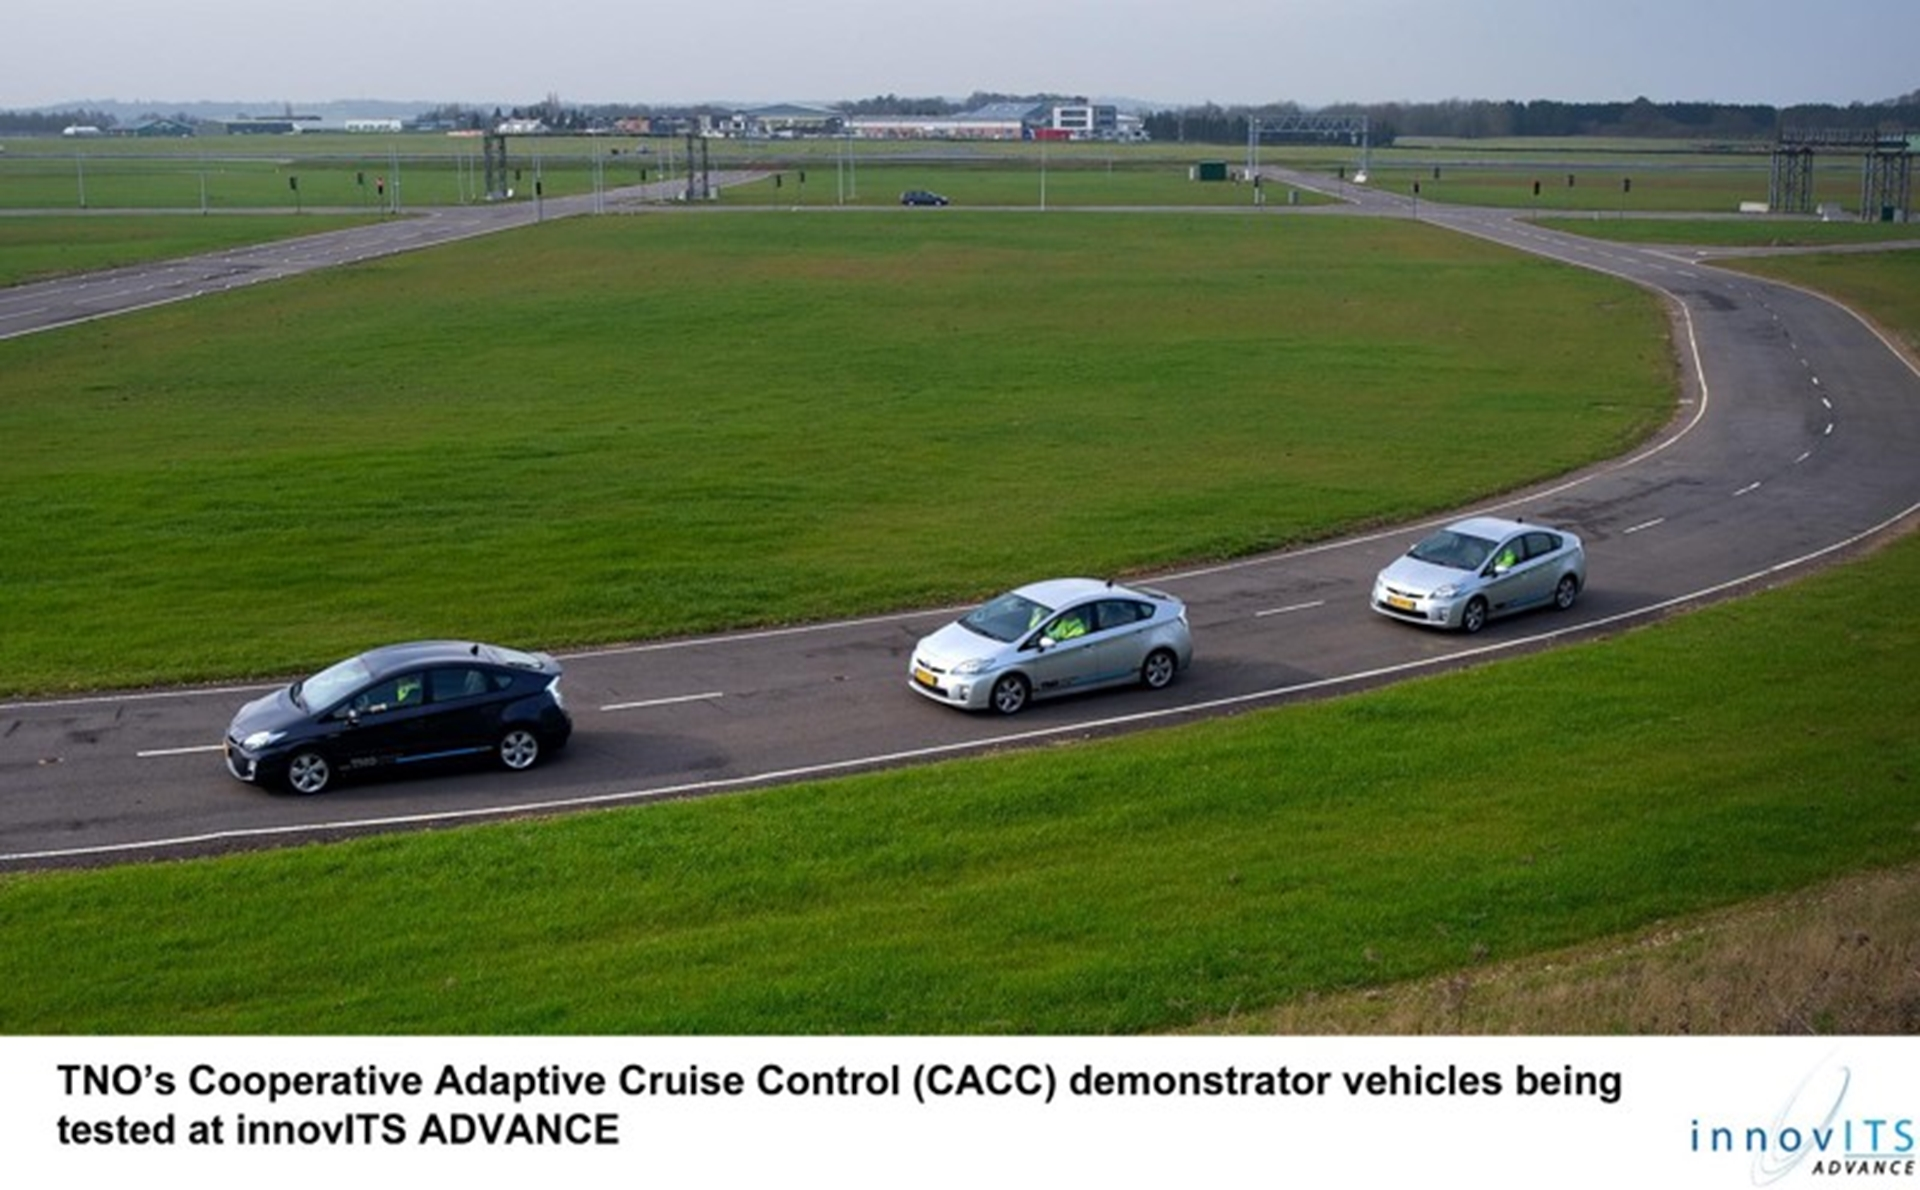 TNO CACC demonstrator vehicles 2012